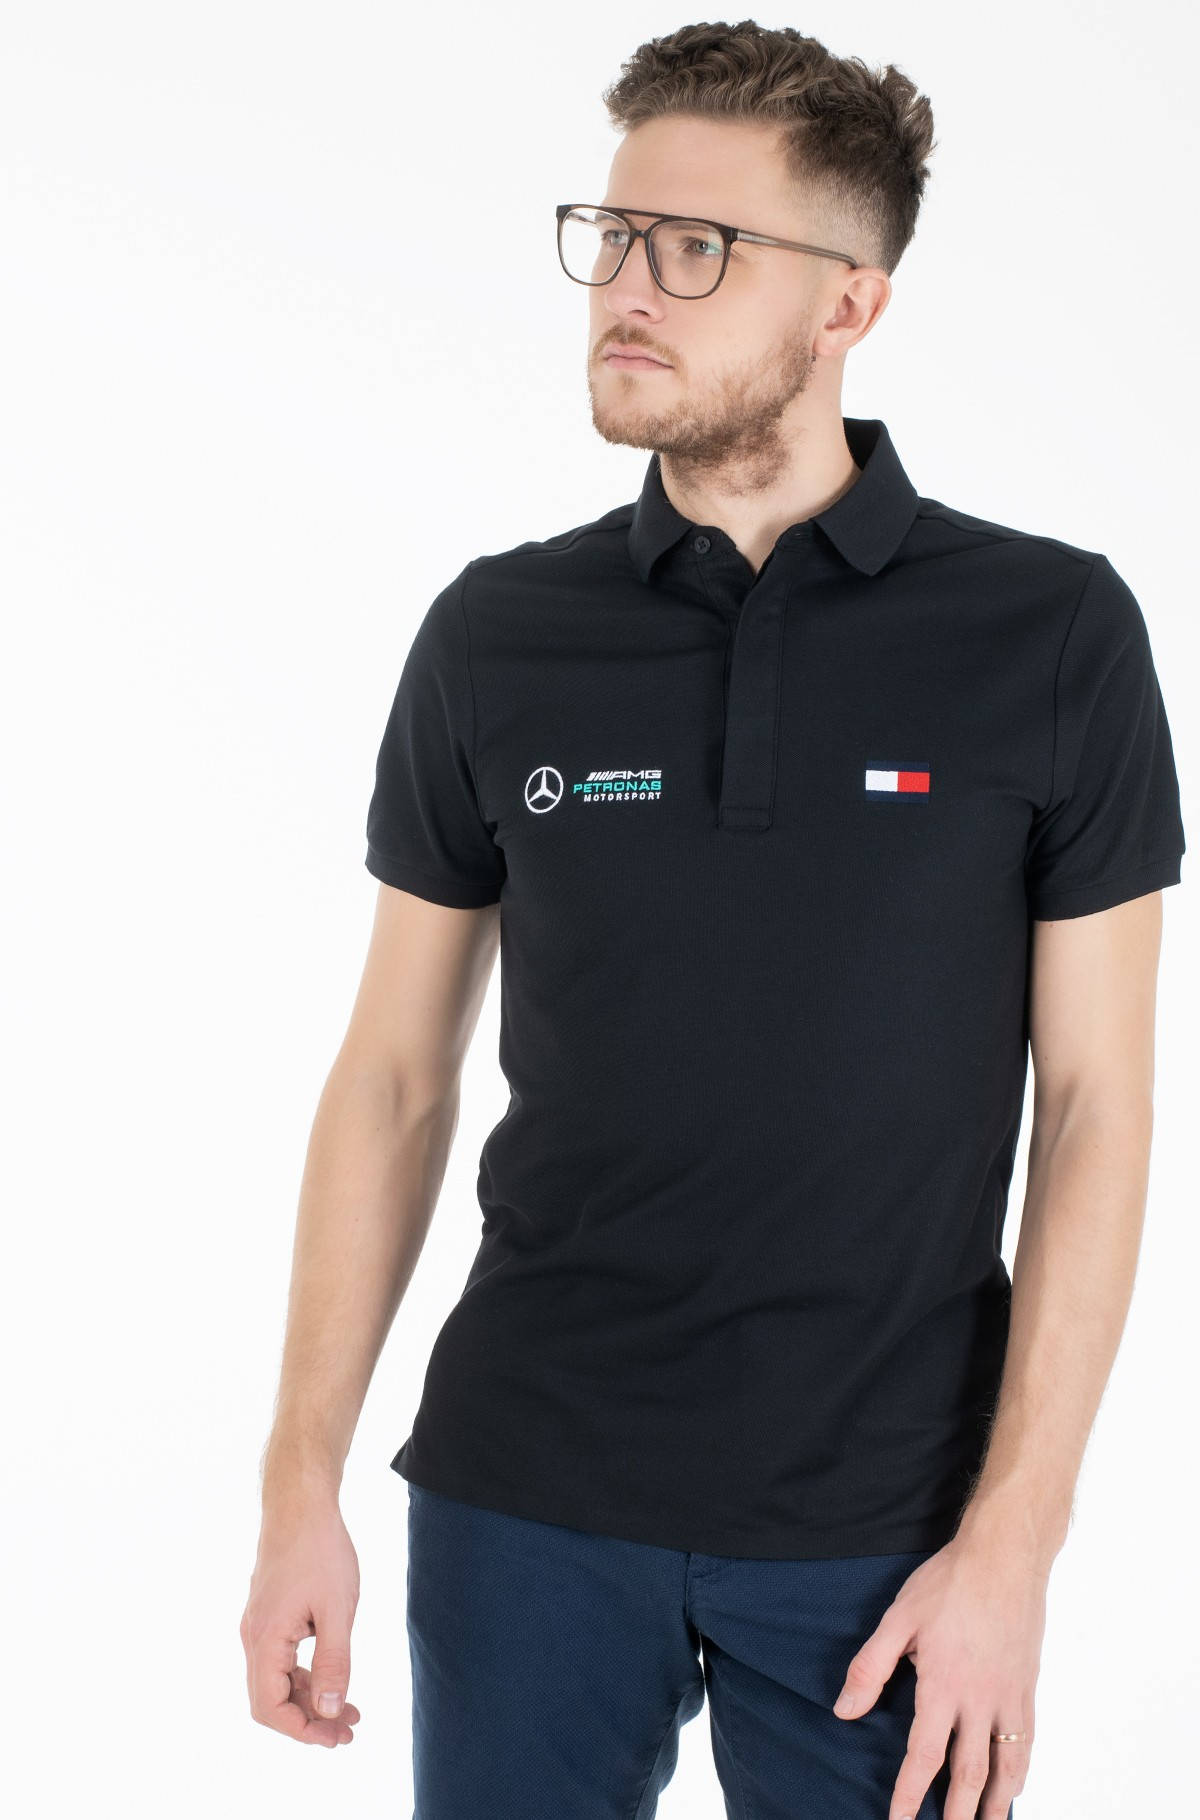 Polokrekls  1 MB TECH LOGO SLIM POLO-full-1